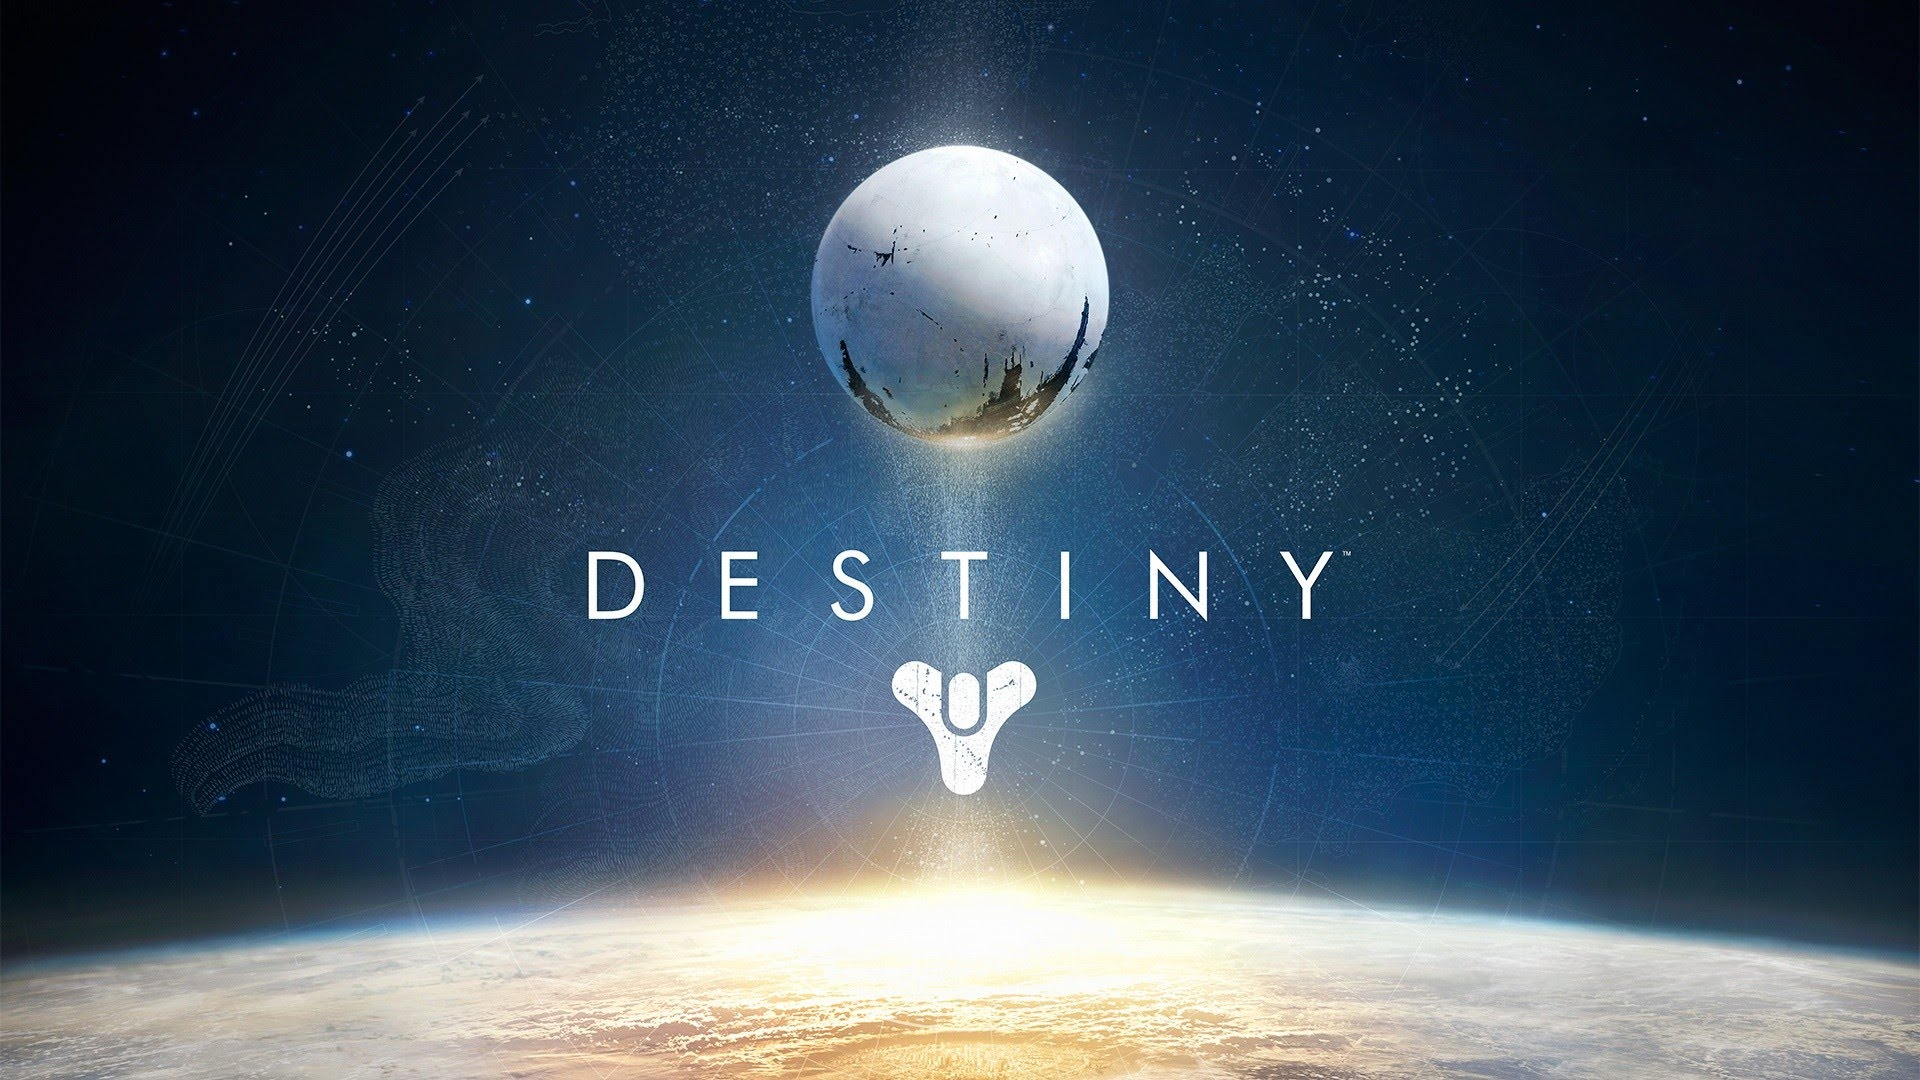 Demo zu Destiny ab morgen im PlayStation Store